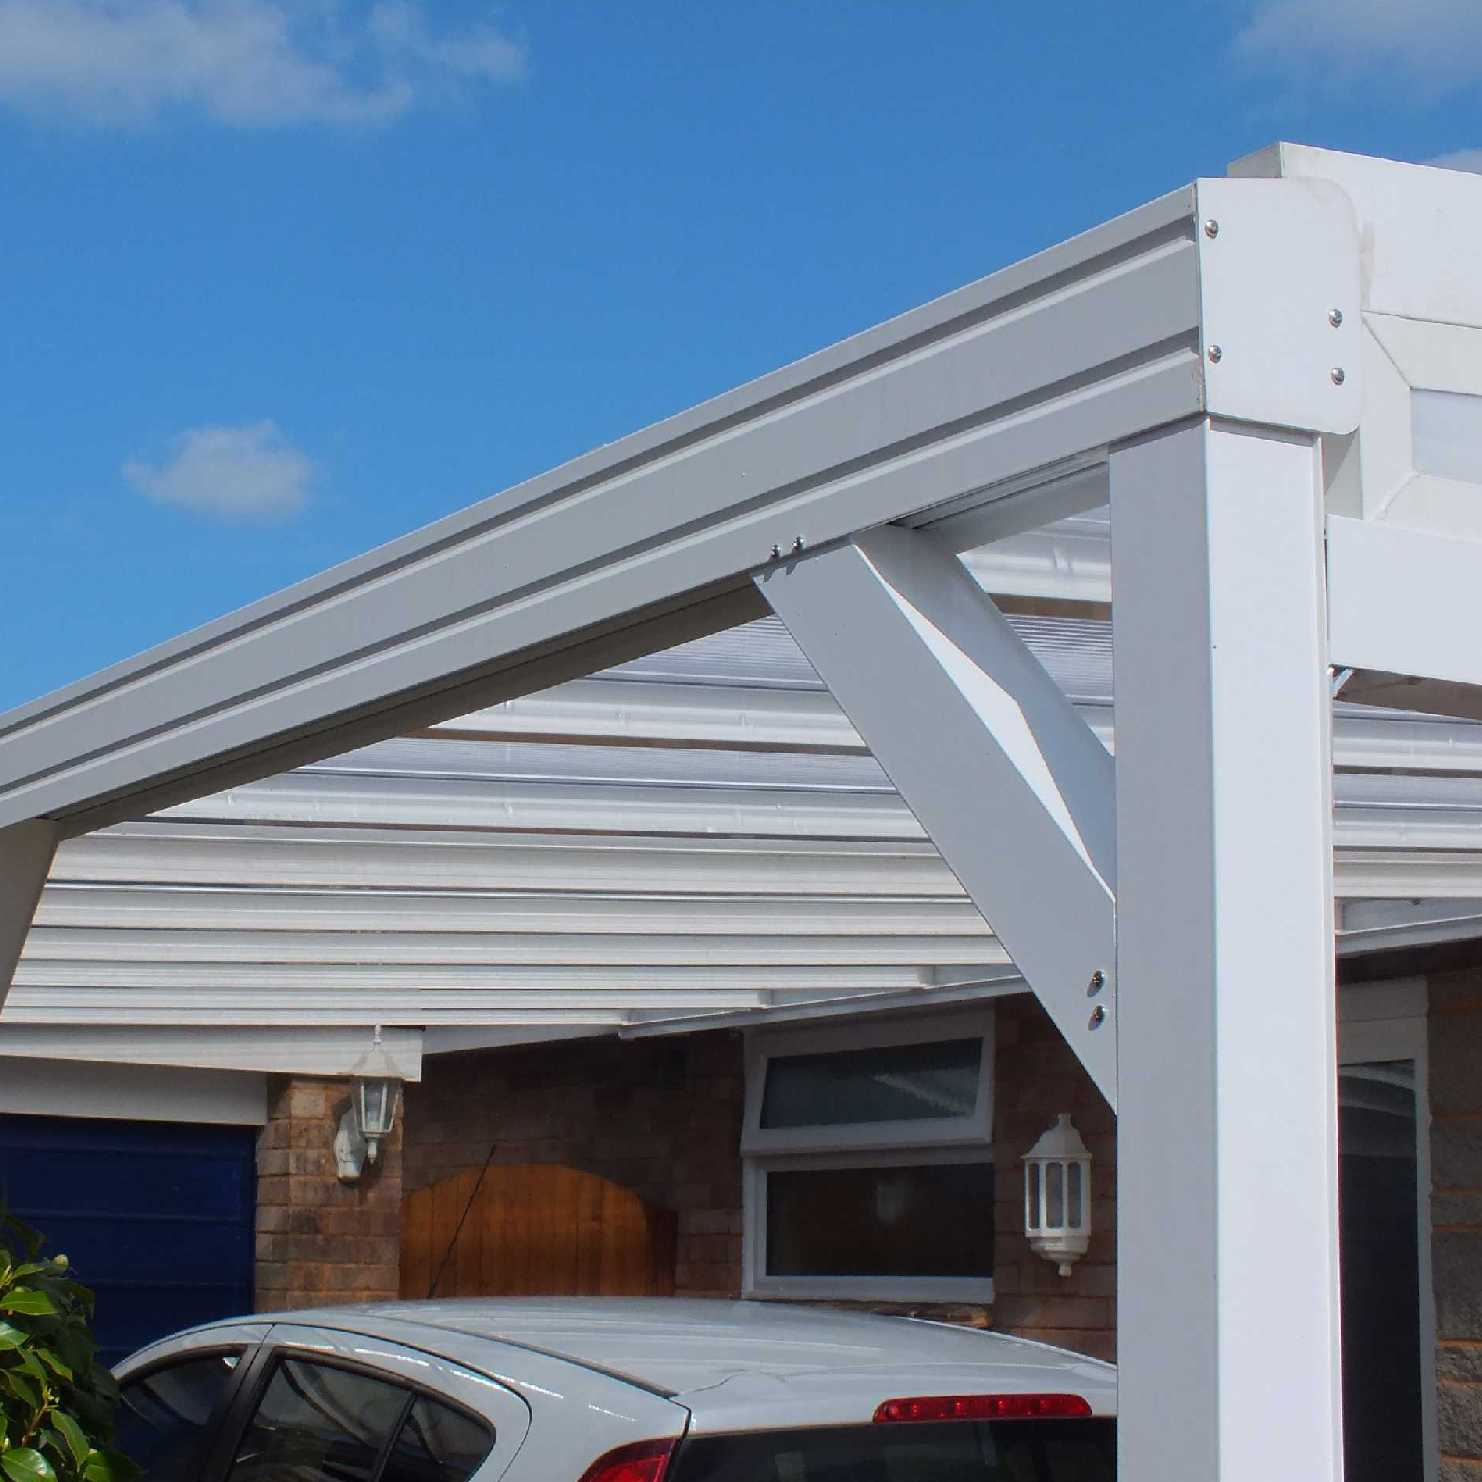 Great deals on Omega Smart Lean-To Canopy with 16mm Polycarbonate Glazing - 3.5m (W) x 3.5m (P), (3) Supporting Posts